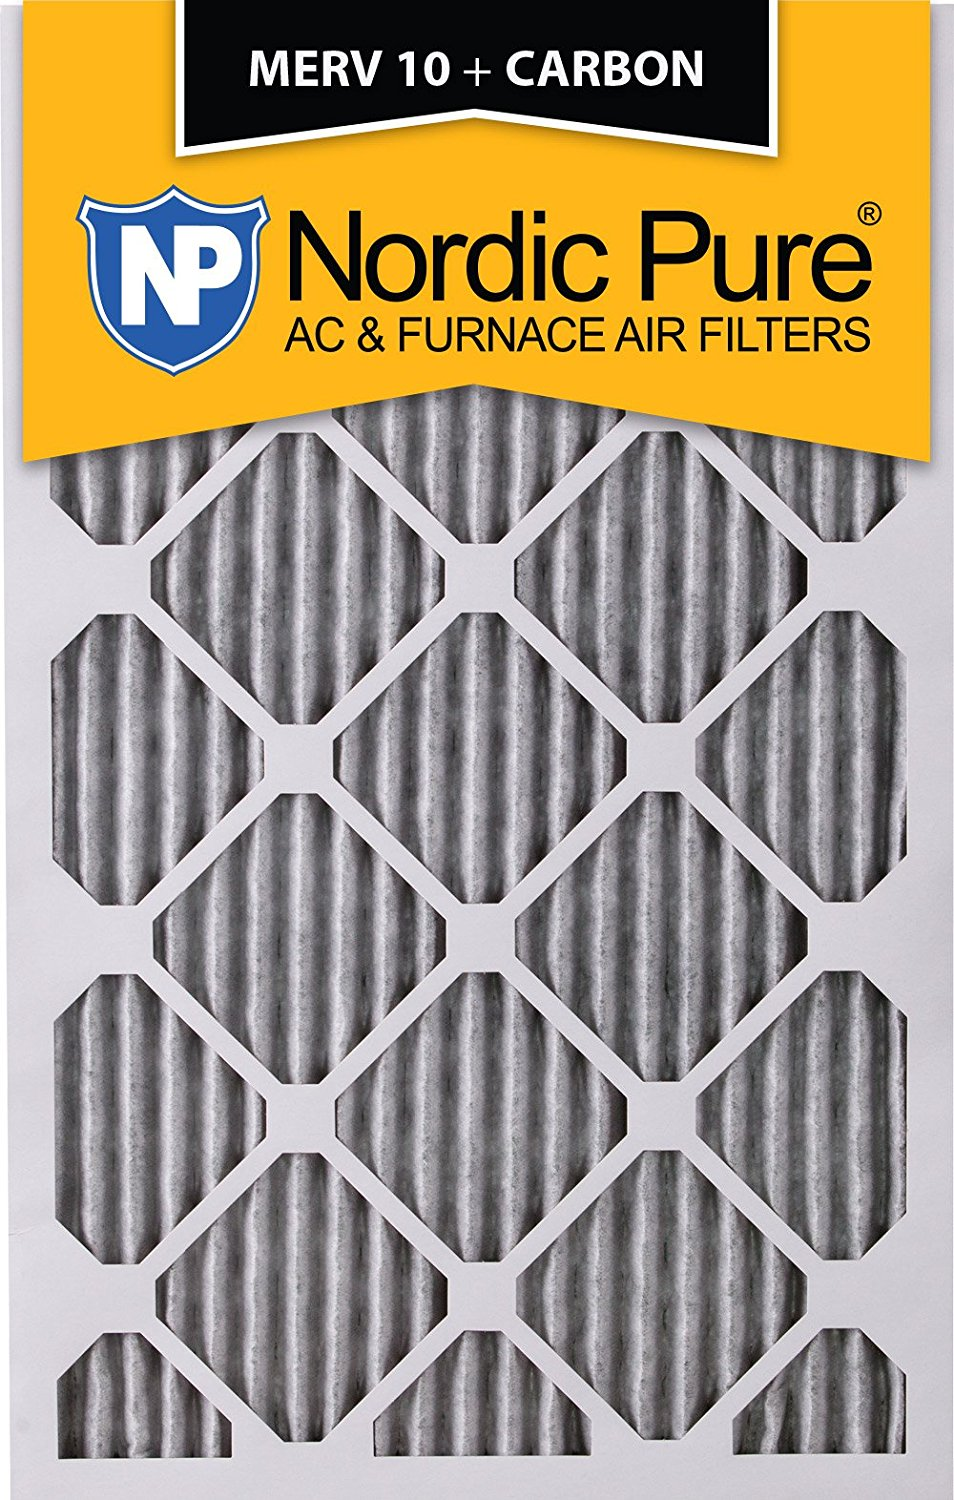 """Nordic Pure 20x25x1PM10C-3 Pleated MERV 10 Plus Carbon AC Furnace Filters (3 Pack), 20 x 25 x 1"""""""